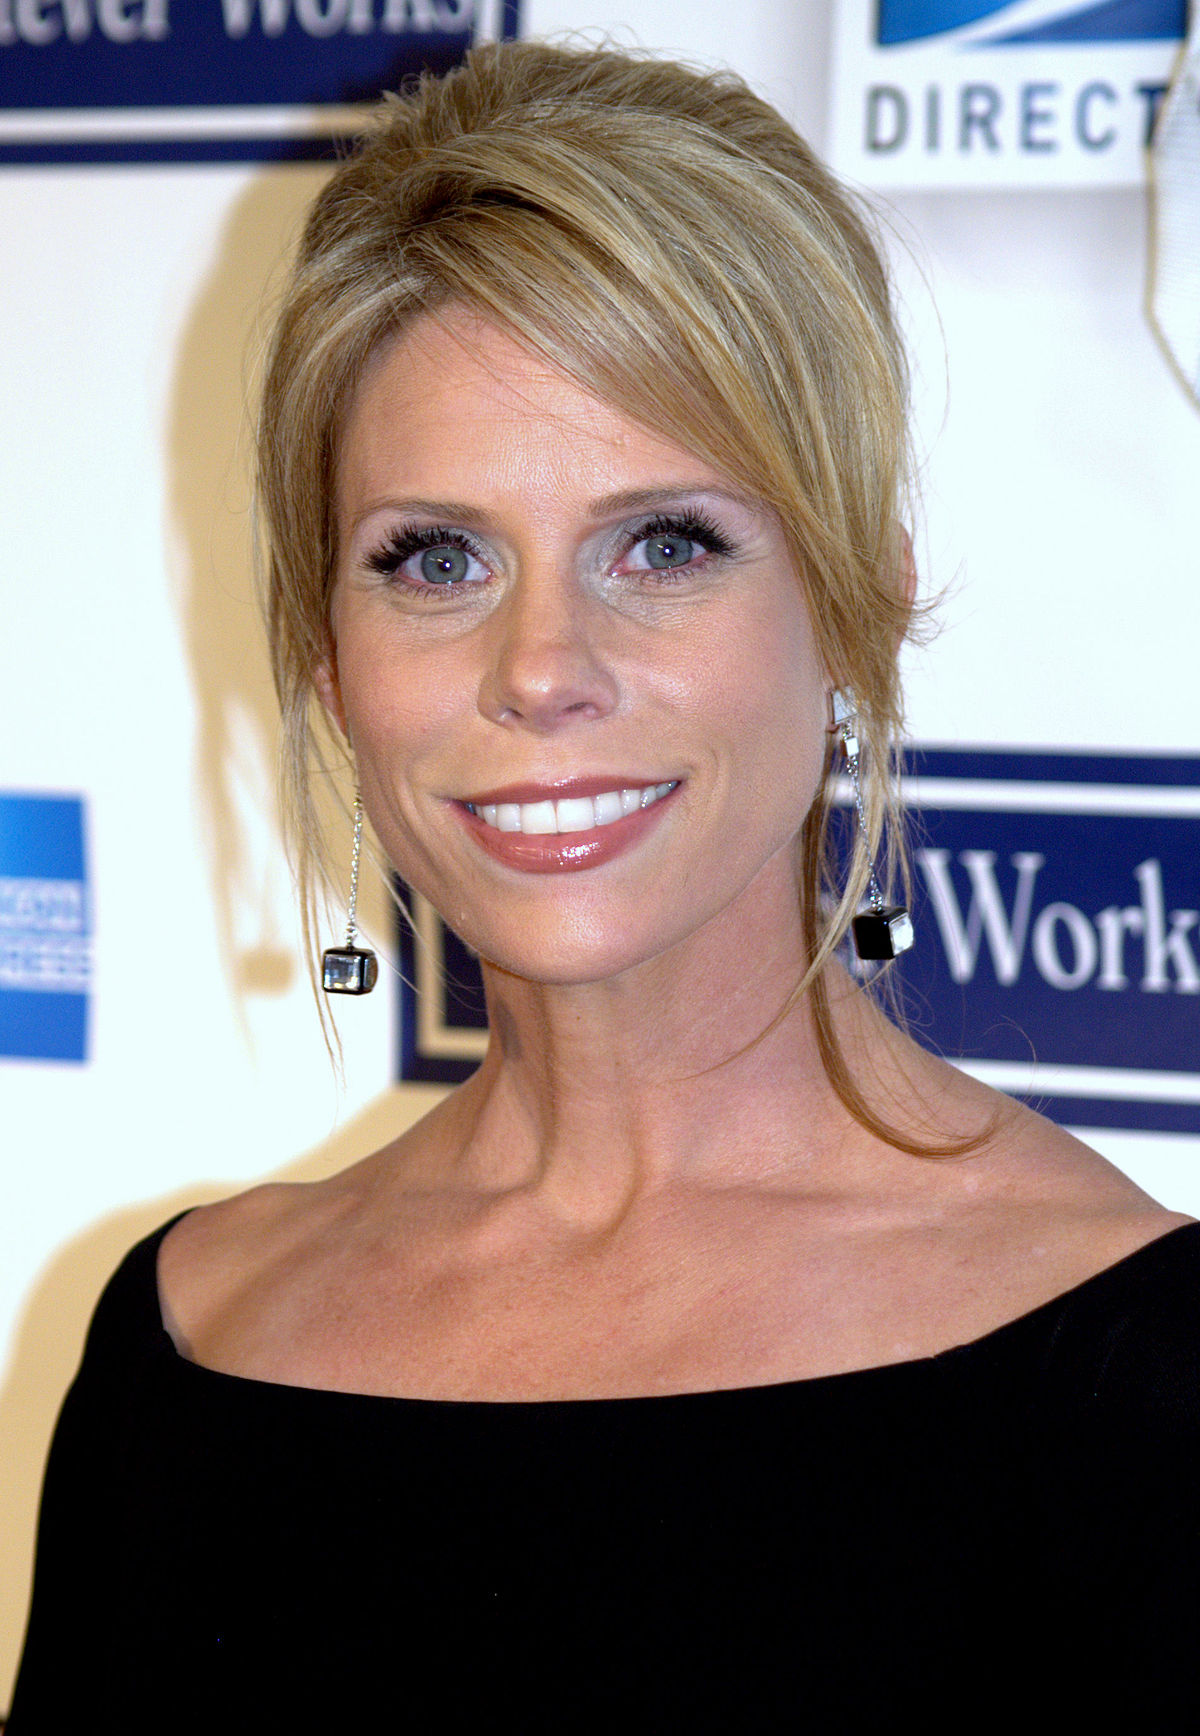 Cheryl Hines nude (79 fotos) Cleavage, YouTube, see through